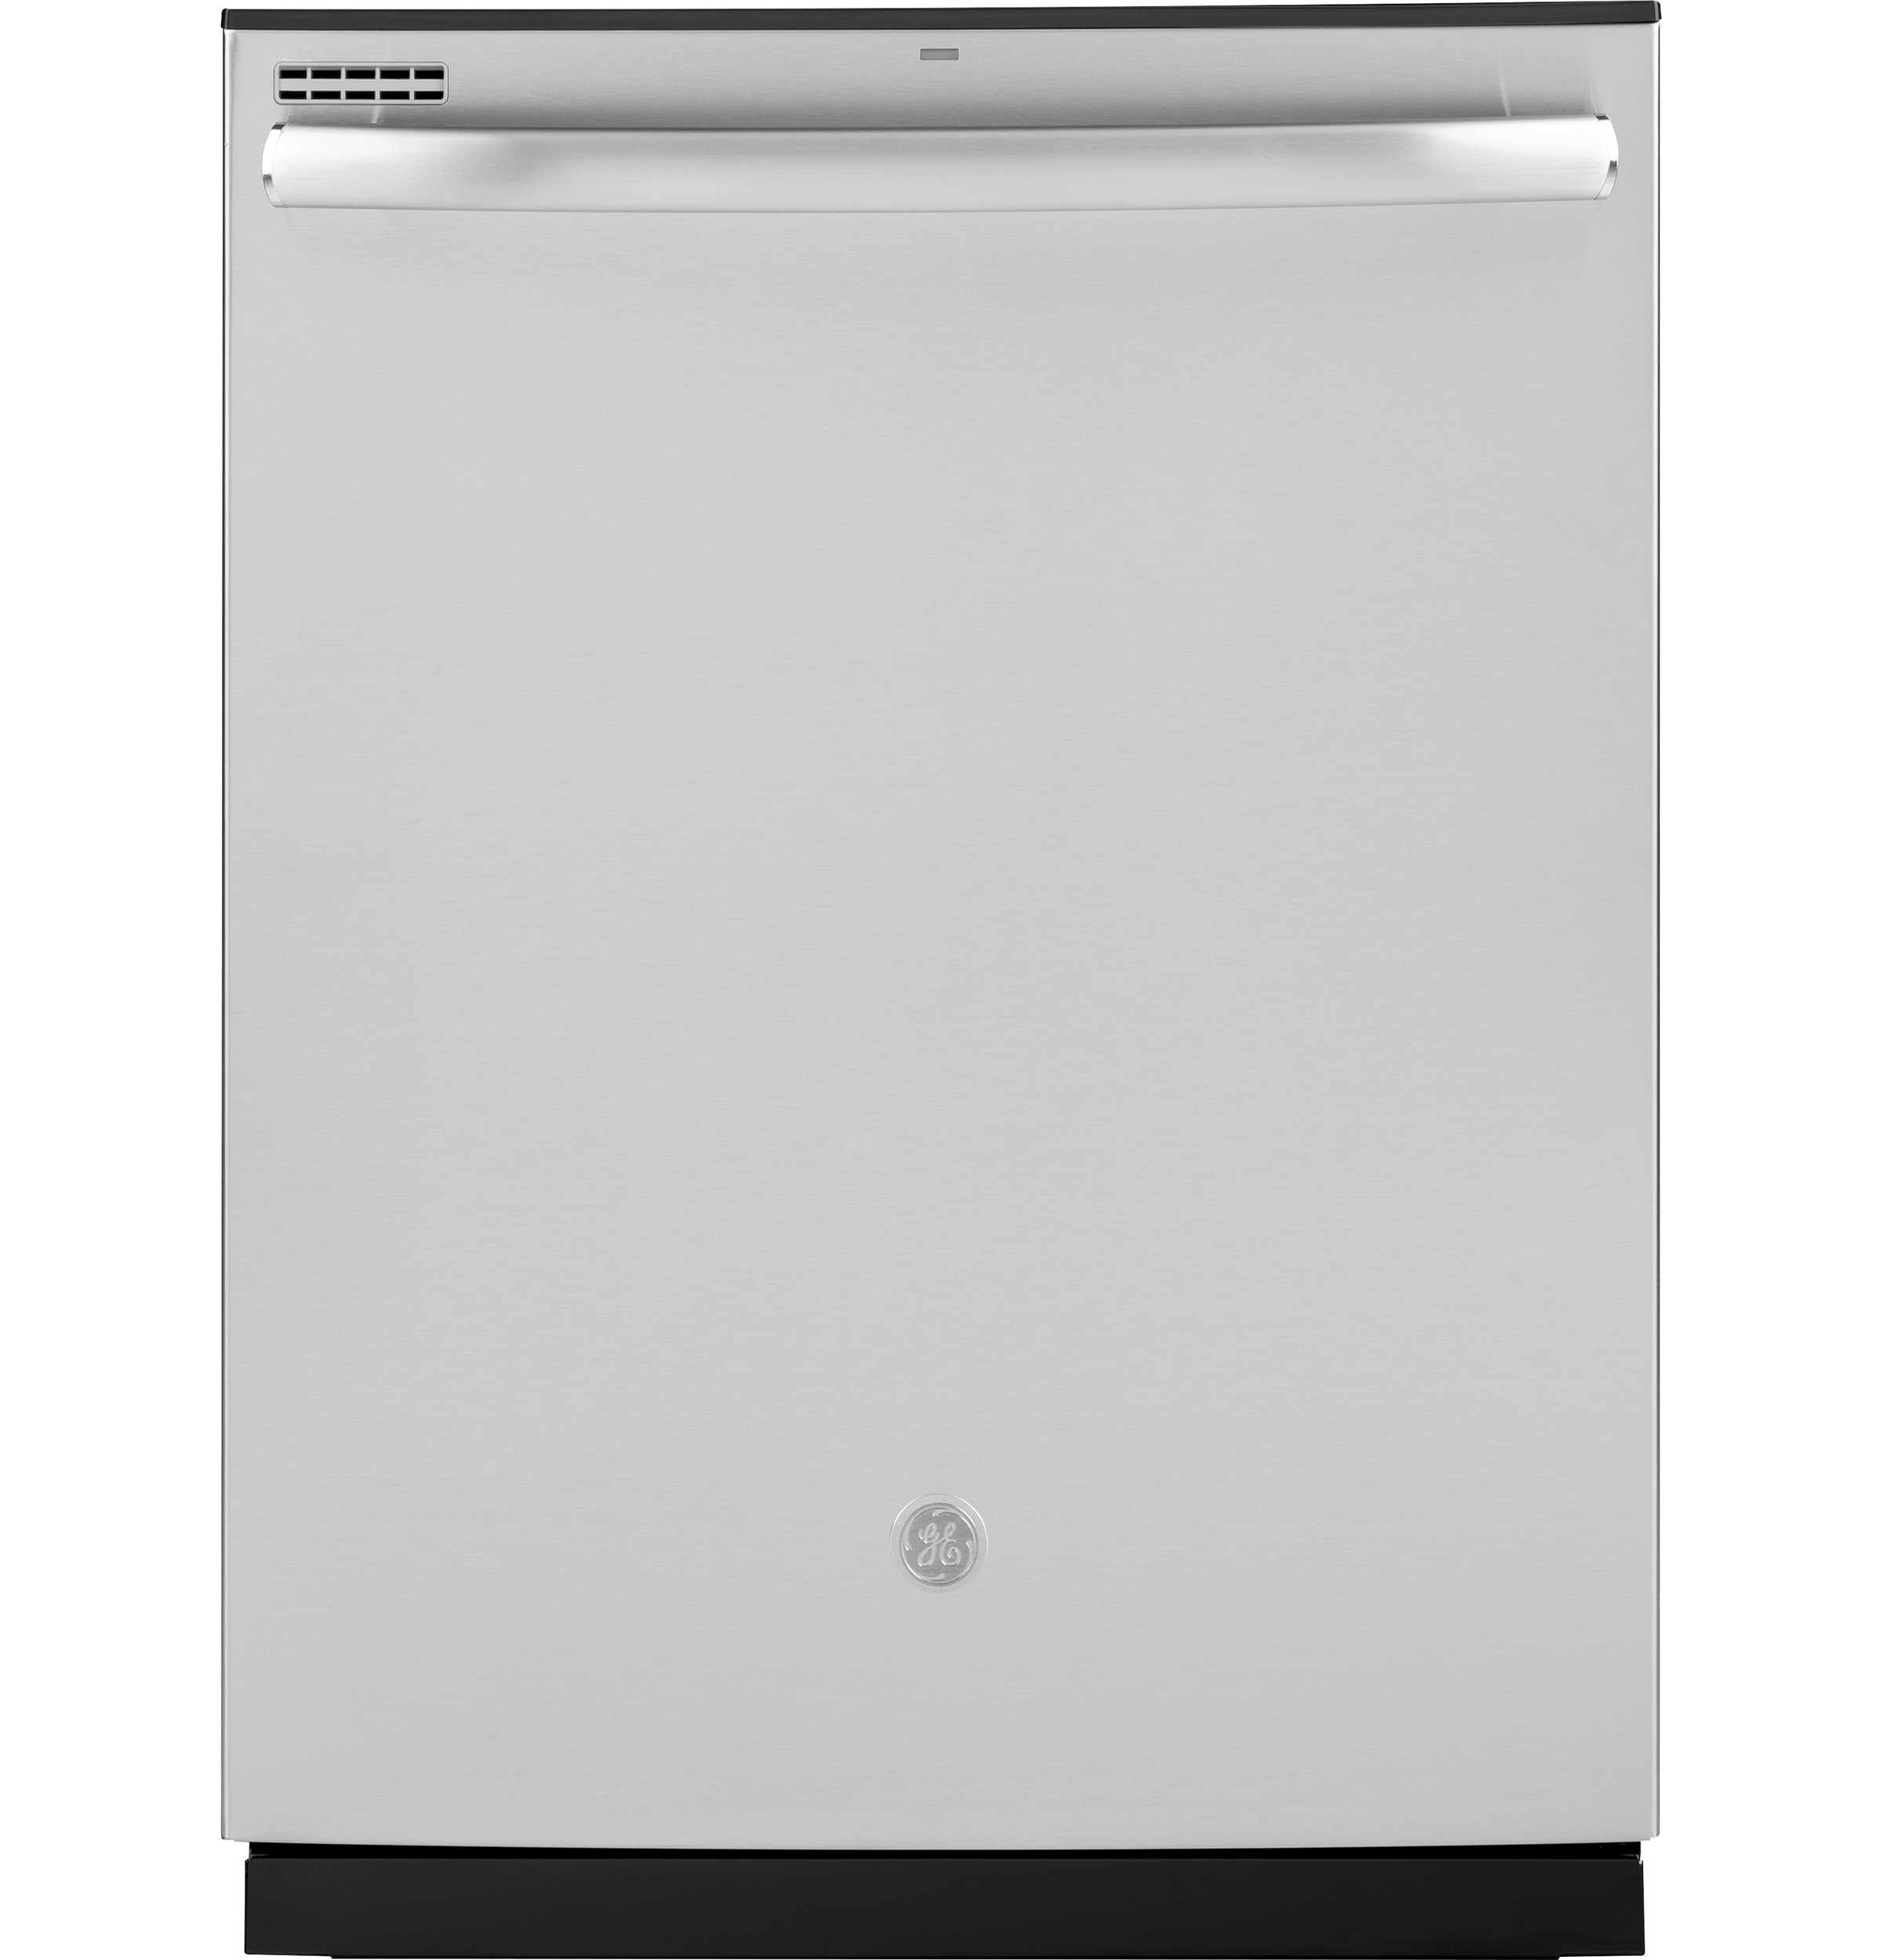 GE GE® Top Control with Plastic Interior Dishwasher with Sanitize Cycle & Dry Boost